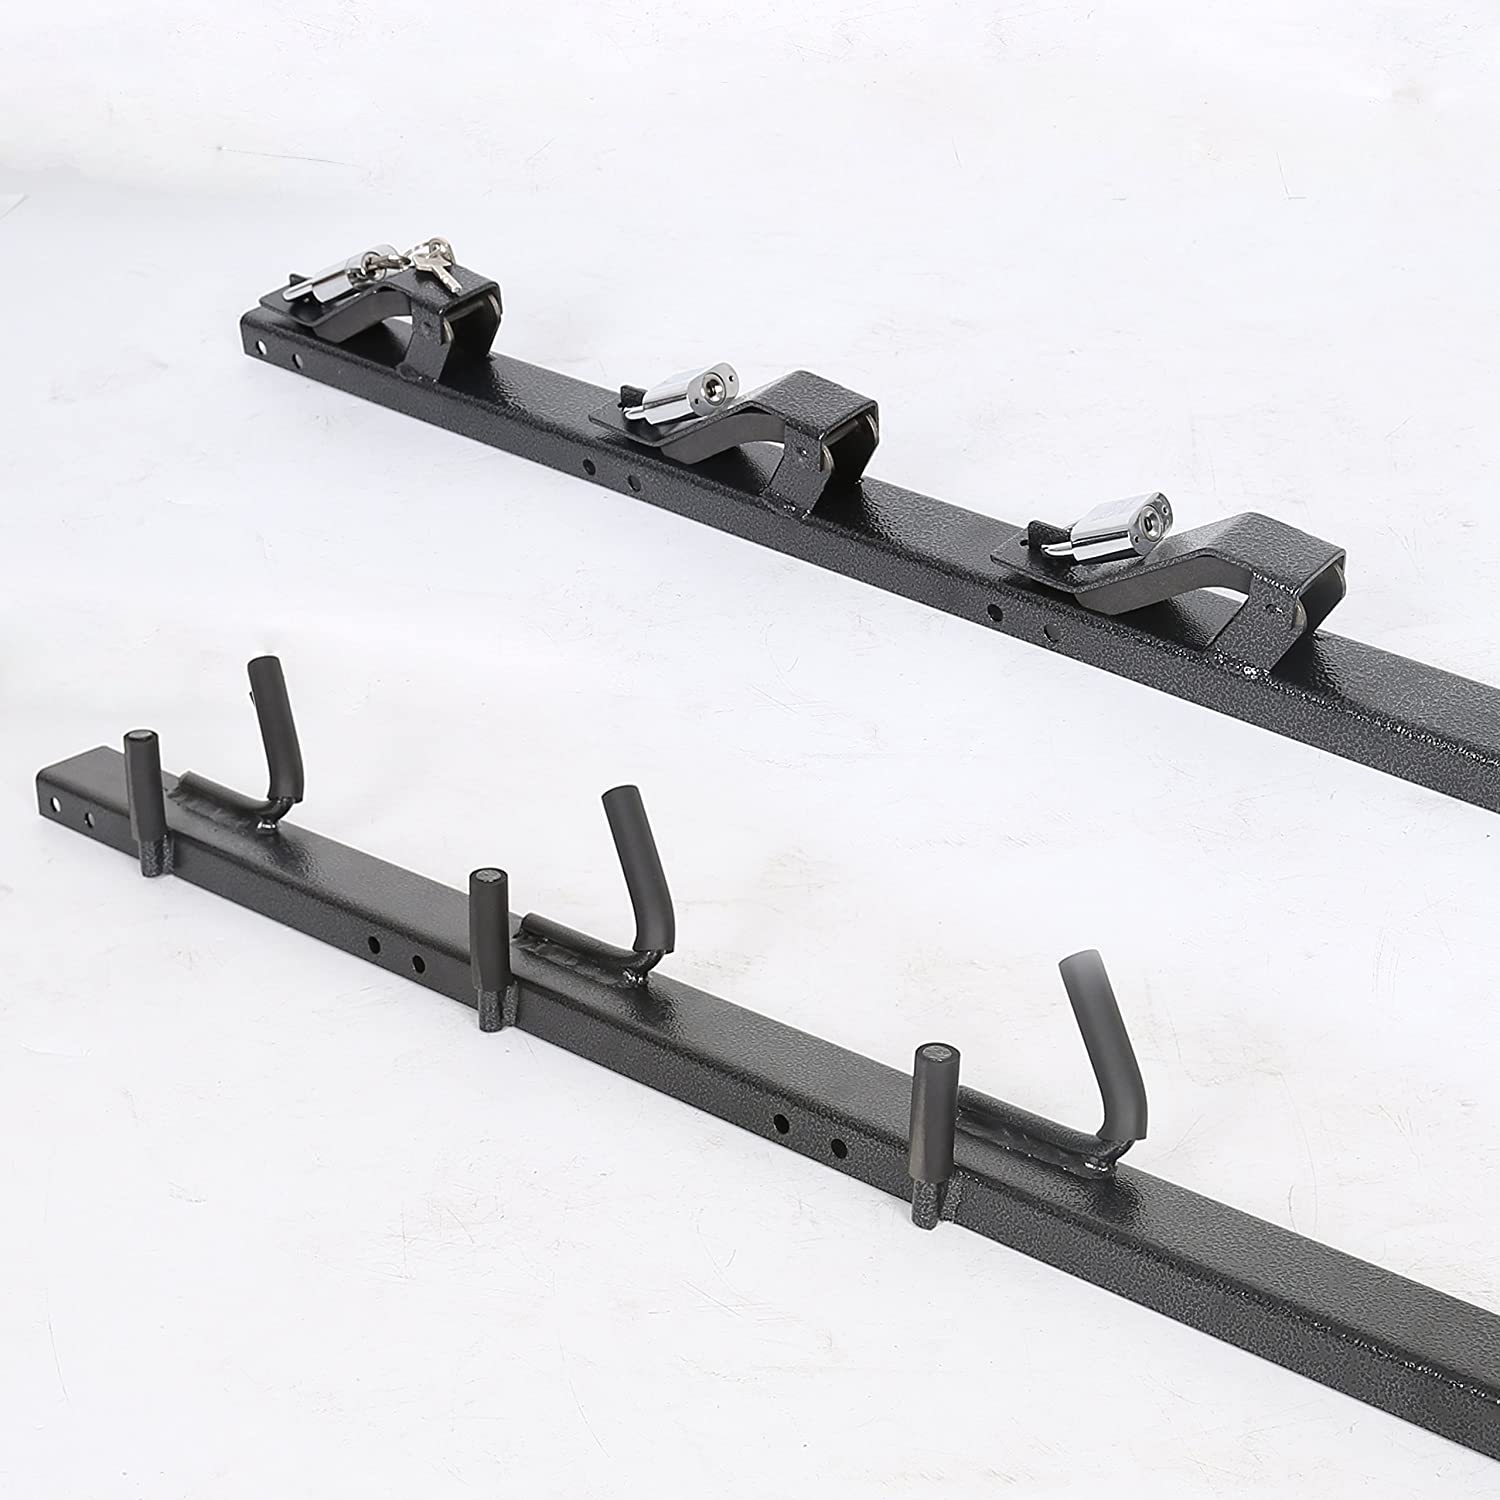 JMTAAT 3 Place Heavy Duty Trimmer Rack Holder Mount on Pickup//Trailer Weed-Eater Edgers Shaft Hedge Clippers Enclosed Gas Carrier New